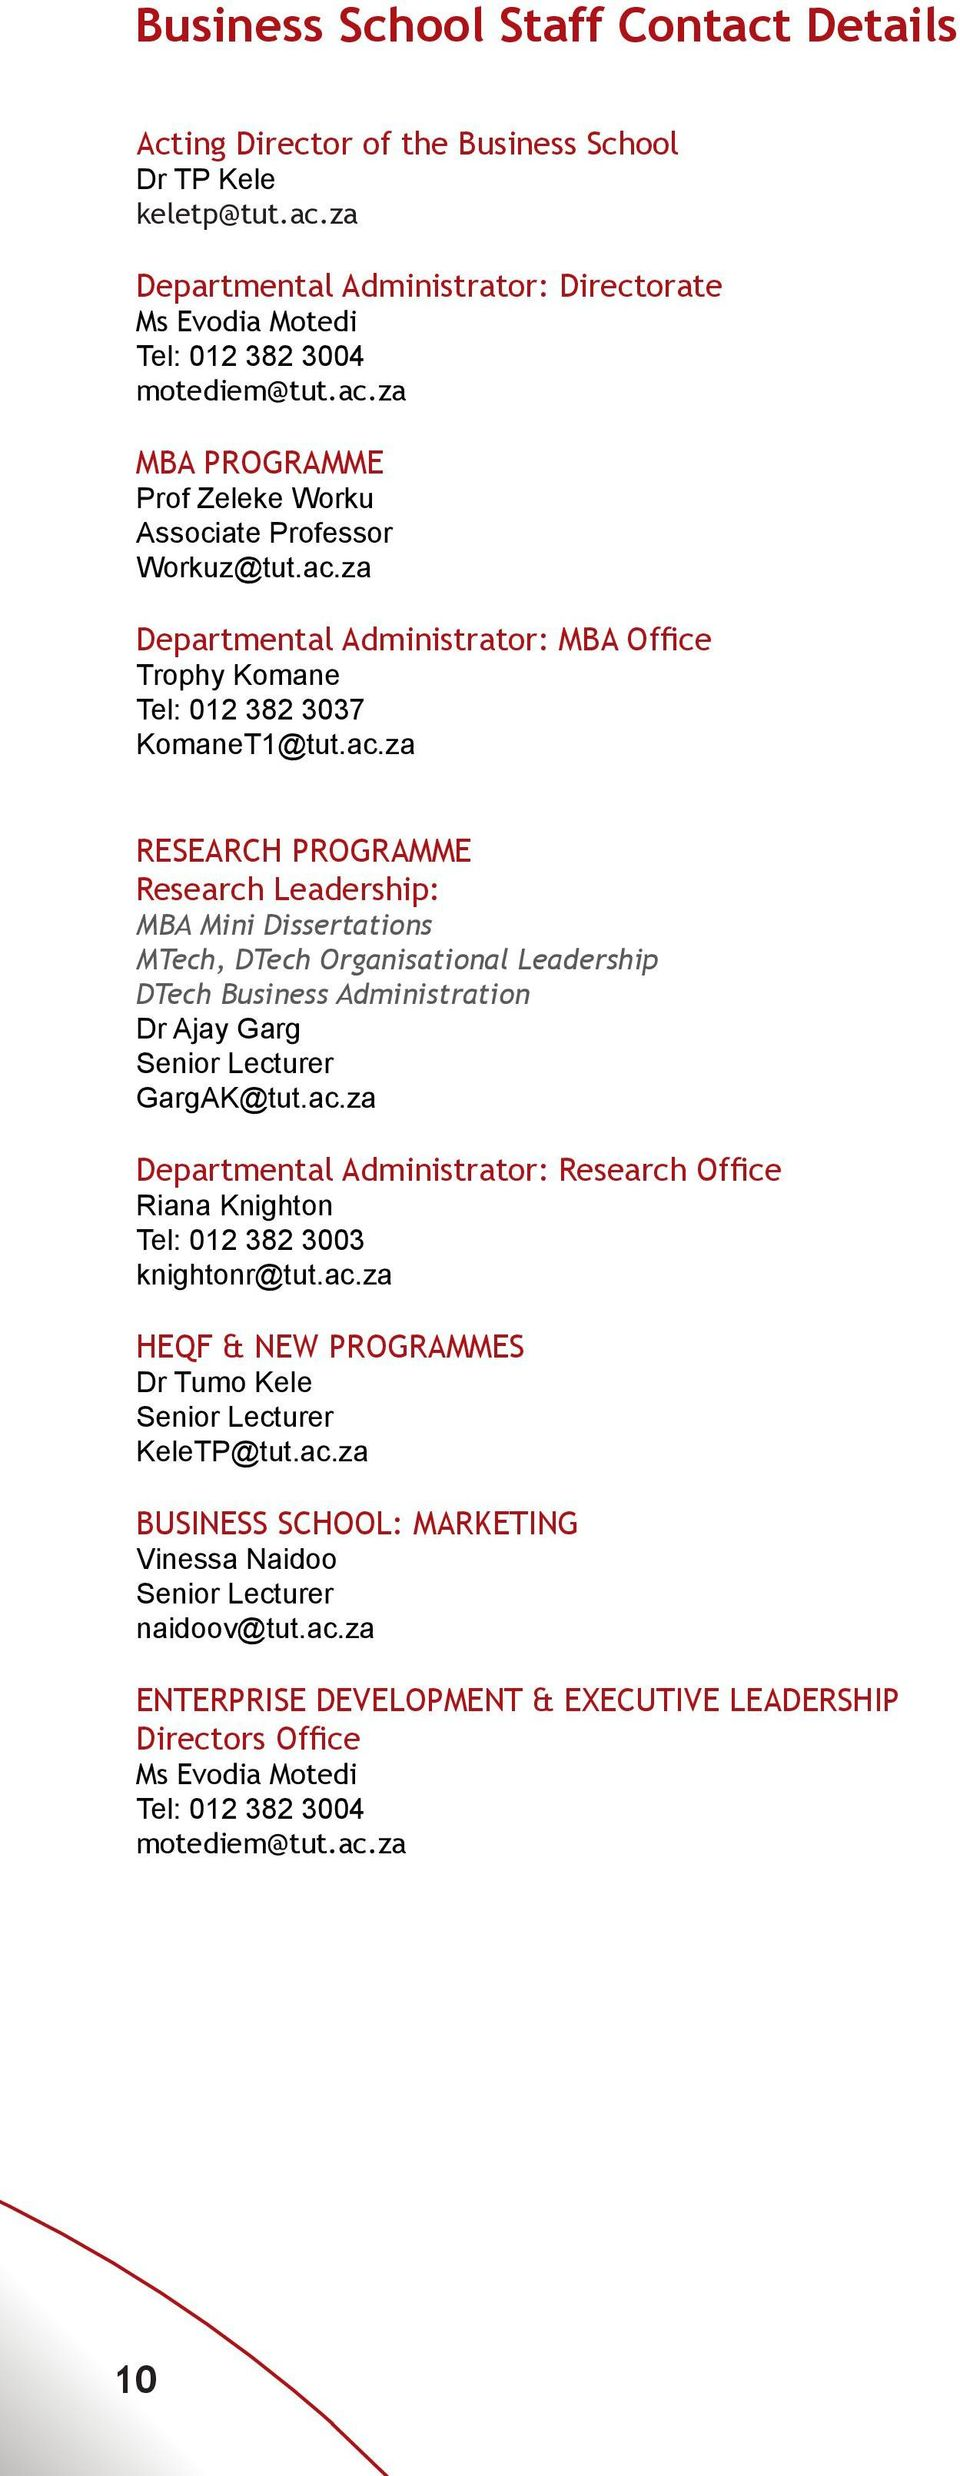 ac.za Departmental Administrator: Research Office Riana Knighton Tel: 012 382 3003 knightonr@tut.ac.za HEQF & NEW PROGRAMMES Dr Tumo Kele Senior Lecturer KeleTP@tut.ac.za BUSINESS SCHOOL: MARKETING Vinessa Naidoo Senior Lecturer naidoov@tut.